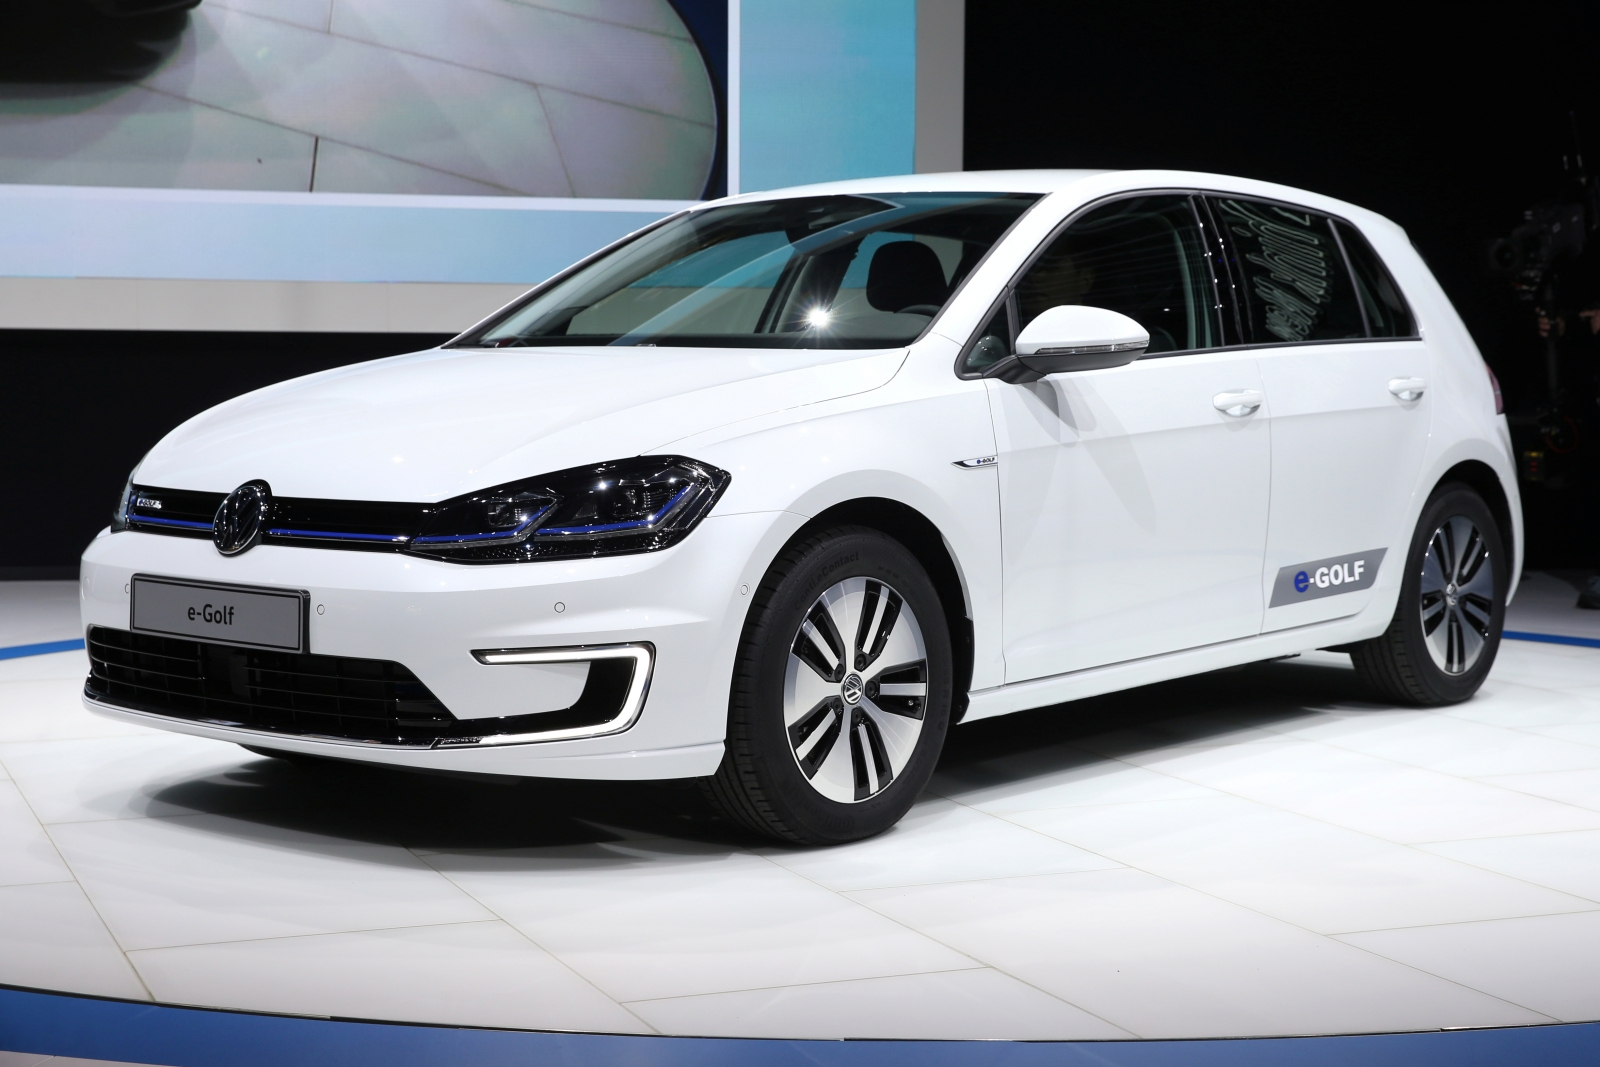 new electric vw e golf launches in wake of emissions scandal. Black Bedroom Furniture Sets. Home Design Ideas